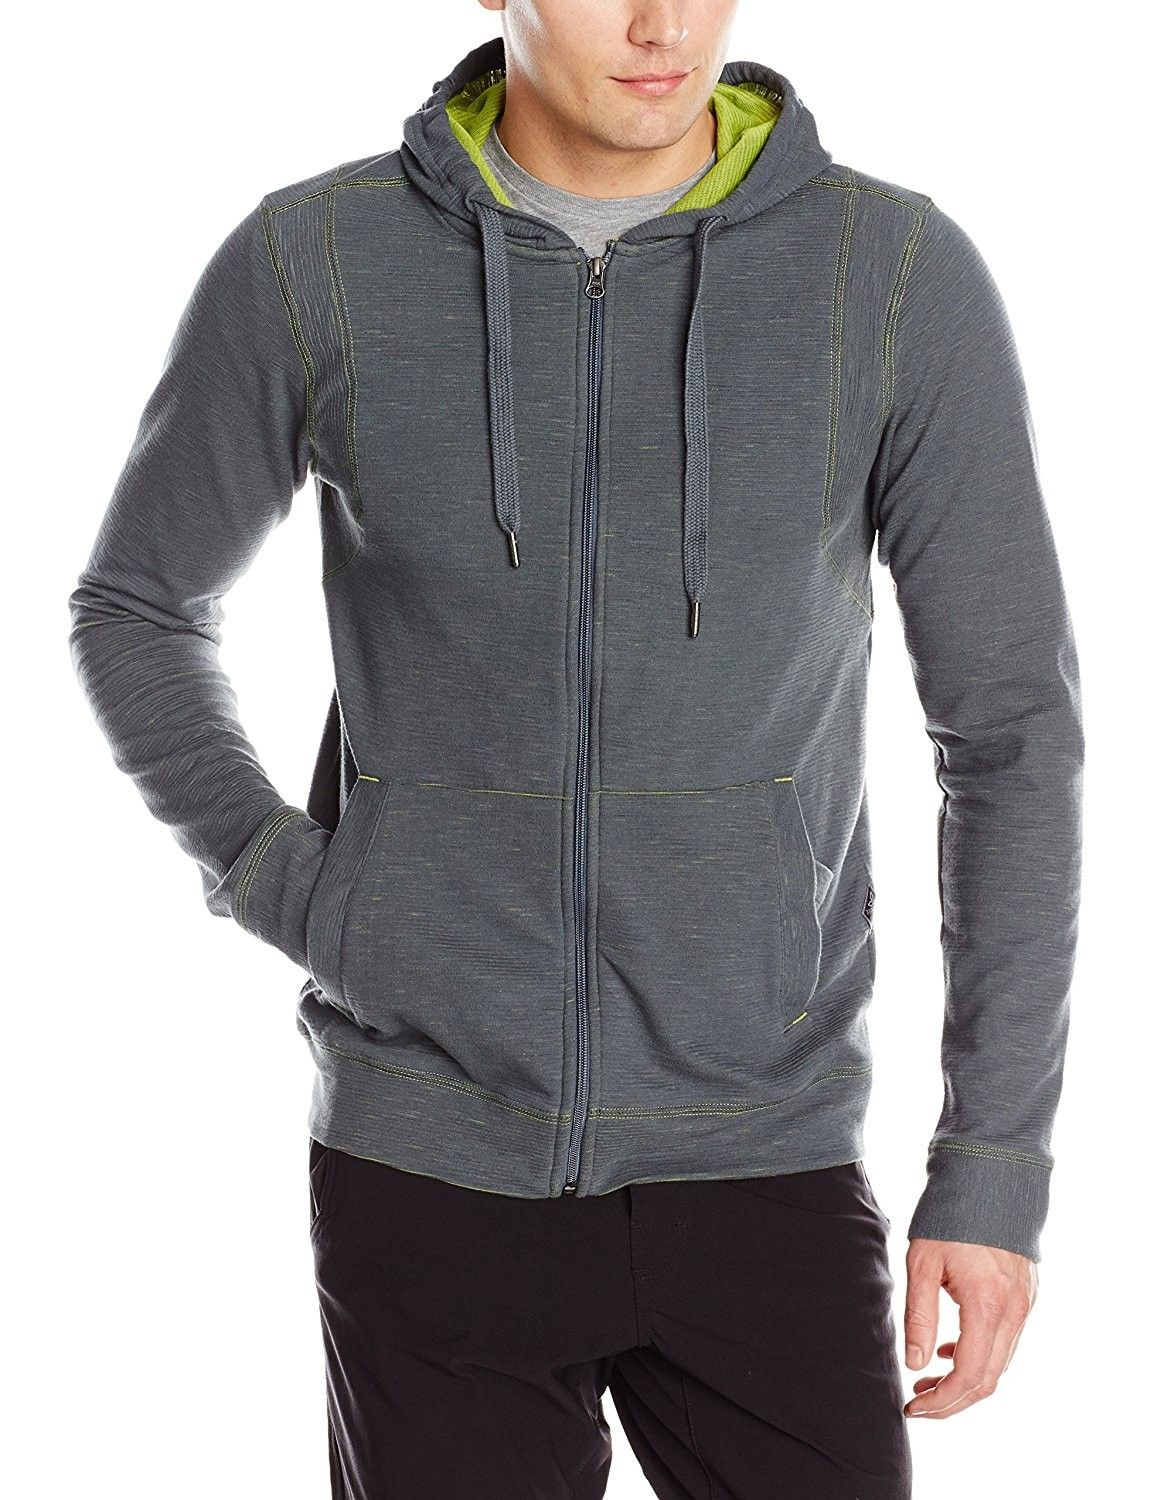 35dda4c33 Berne Quarter Zip Hooded Sweatshirt – EDGE Engineering and ...